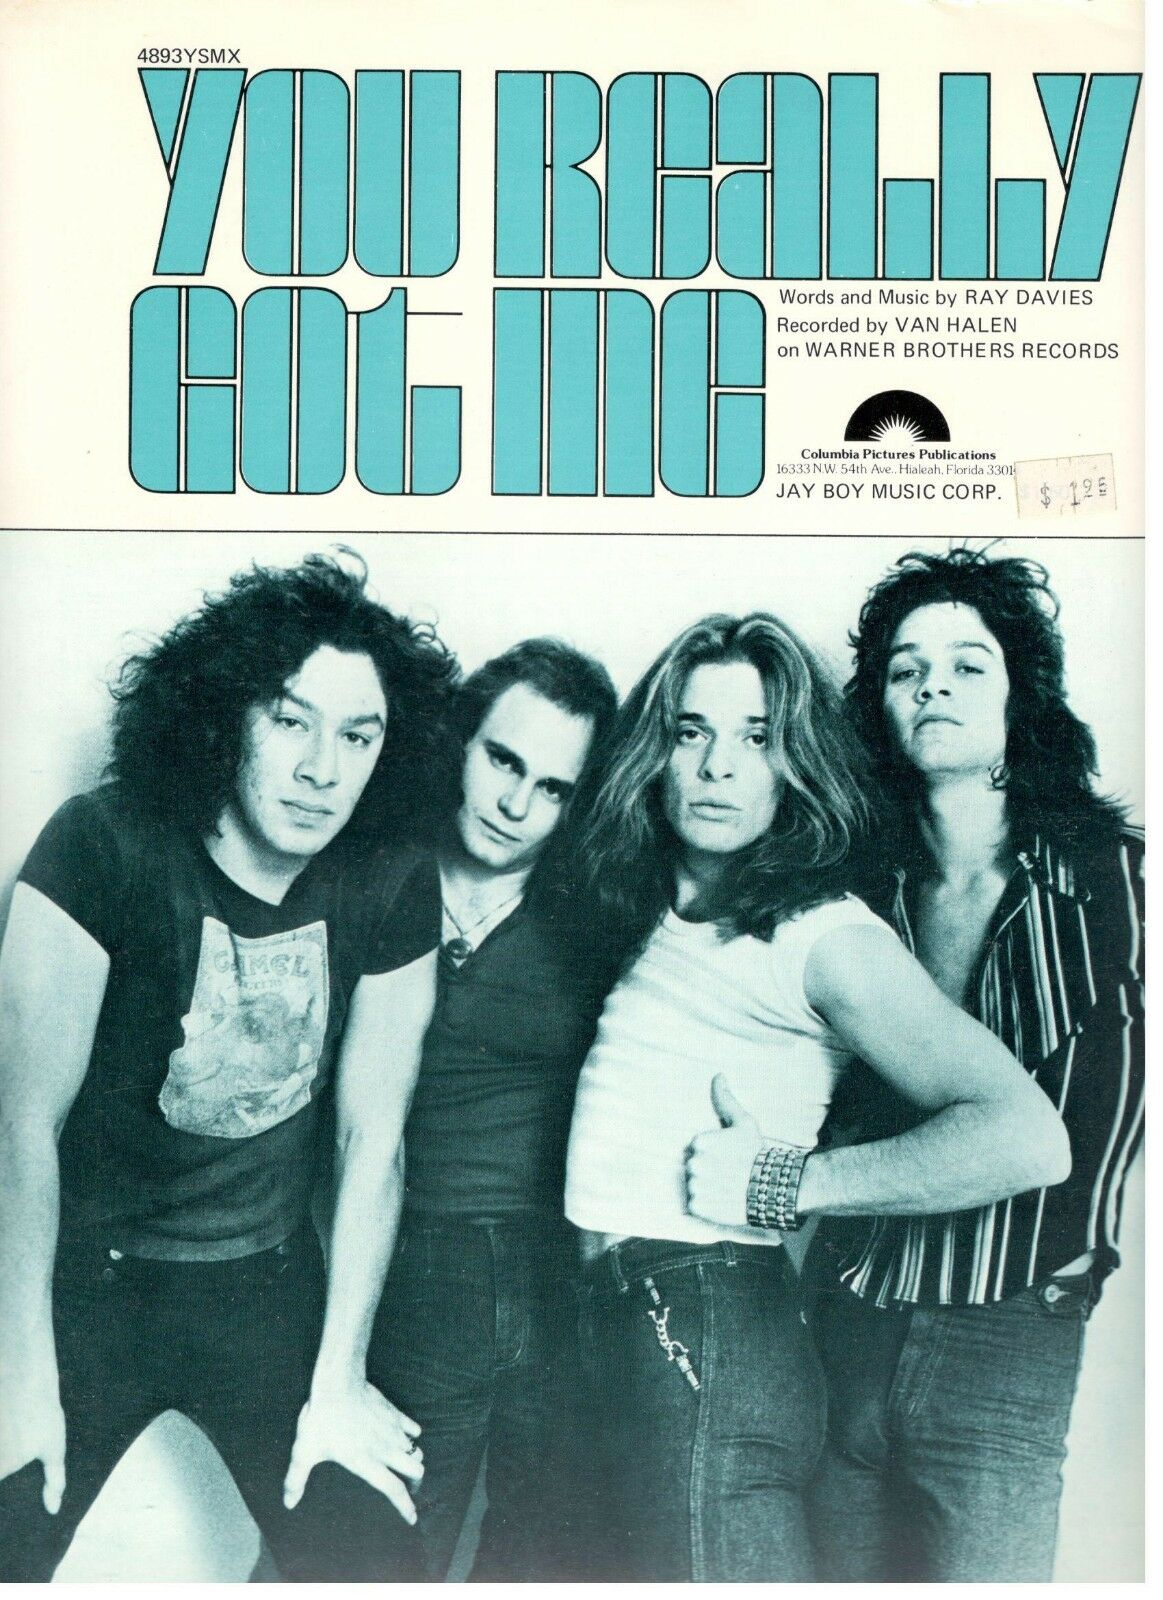 VAN HALEN  YOU REALLY GOT ME  SHEET MUSIC-EXTREMELY RARE-BRAND NEW ON SALE-P V C